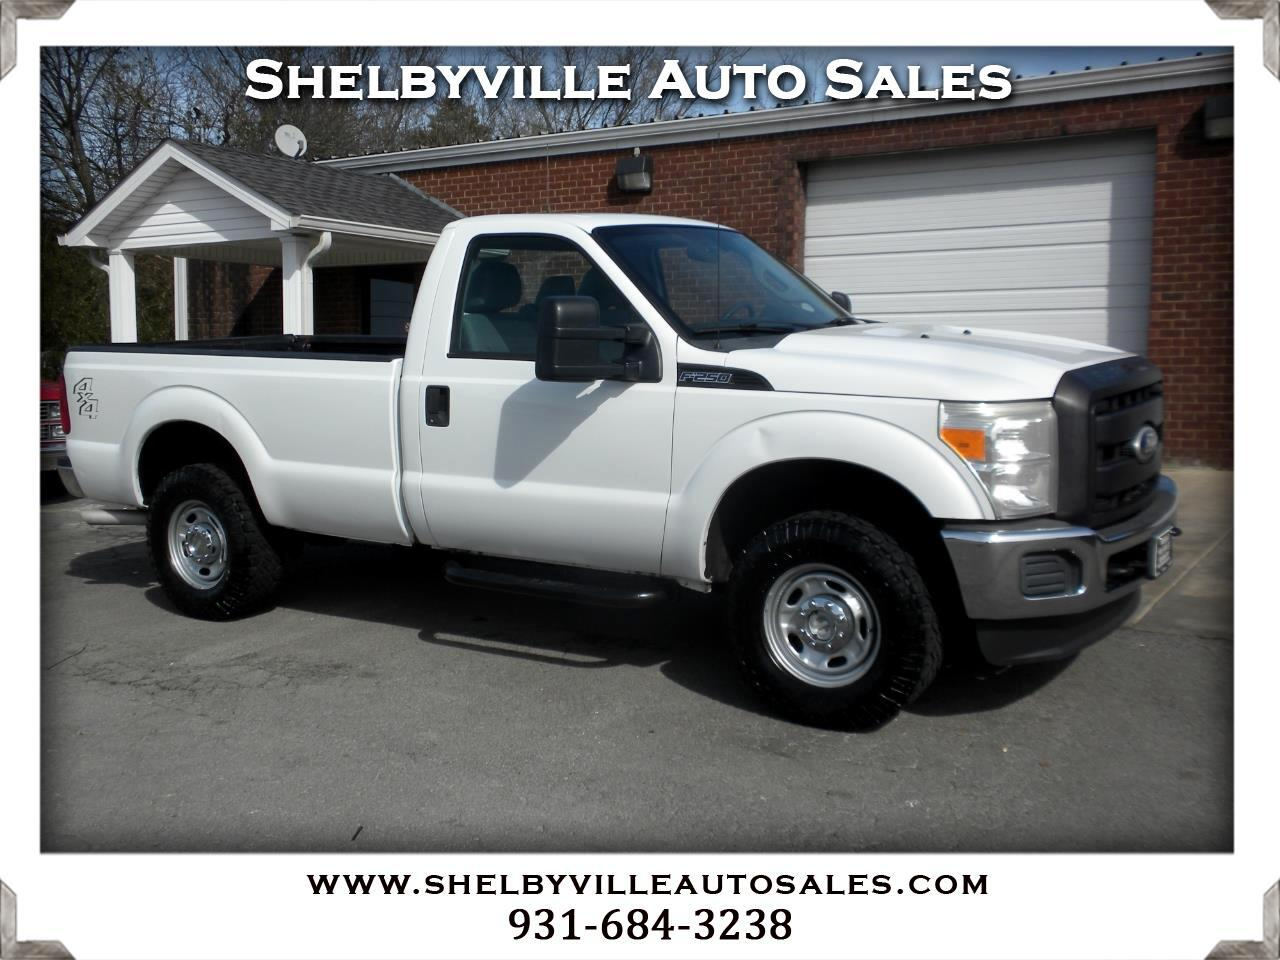 2011 Ford Super Duty F-250 SRW 4X4 Reg Cab XL